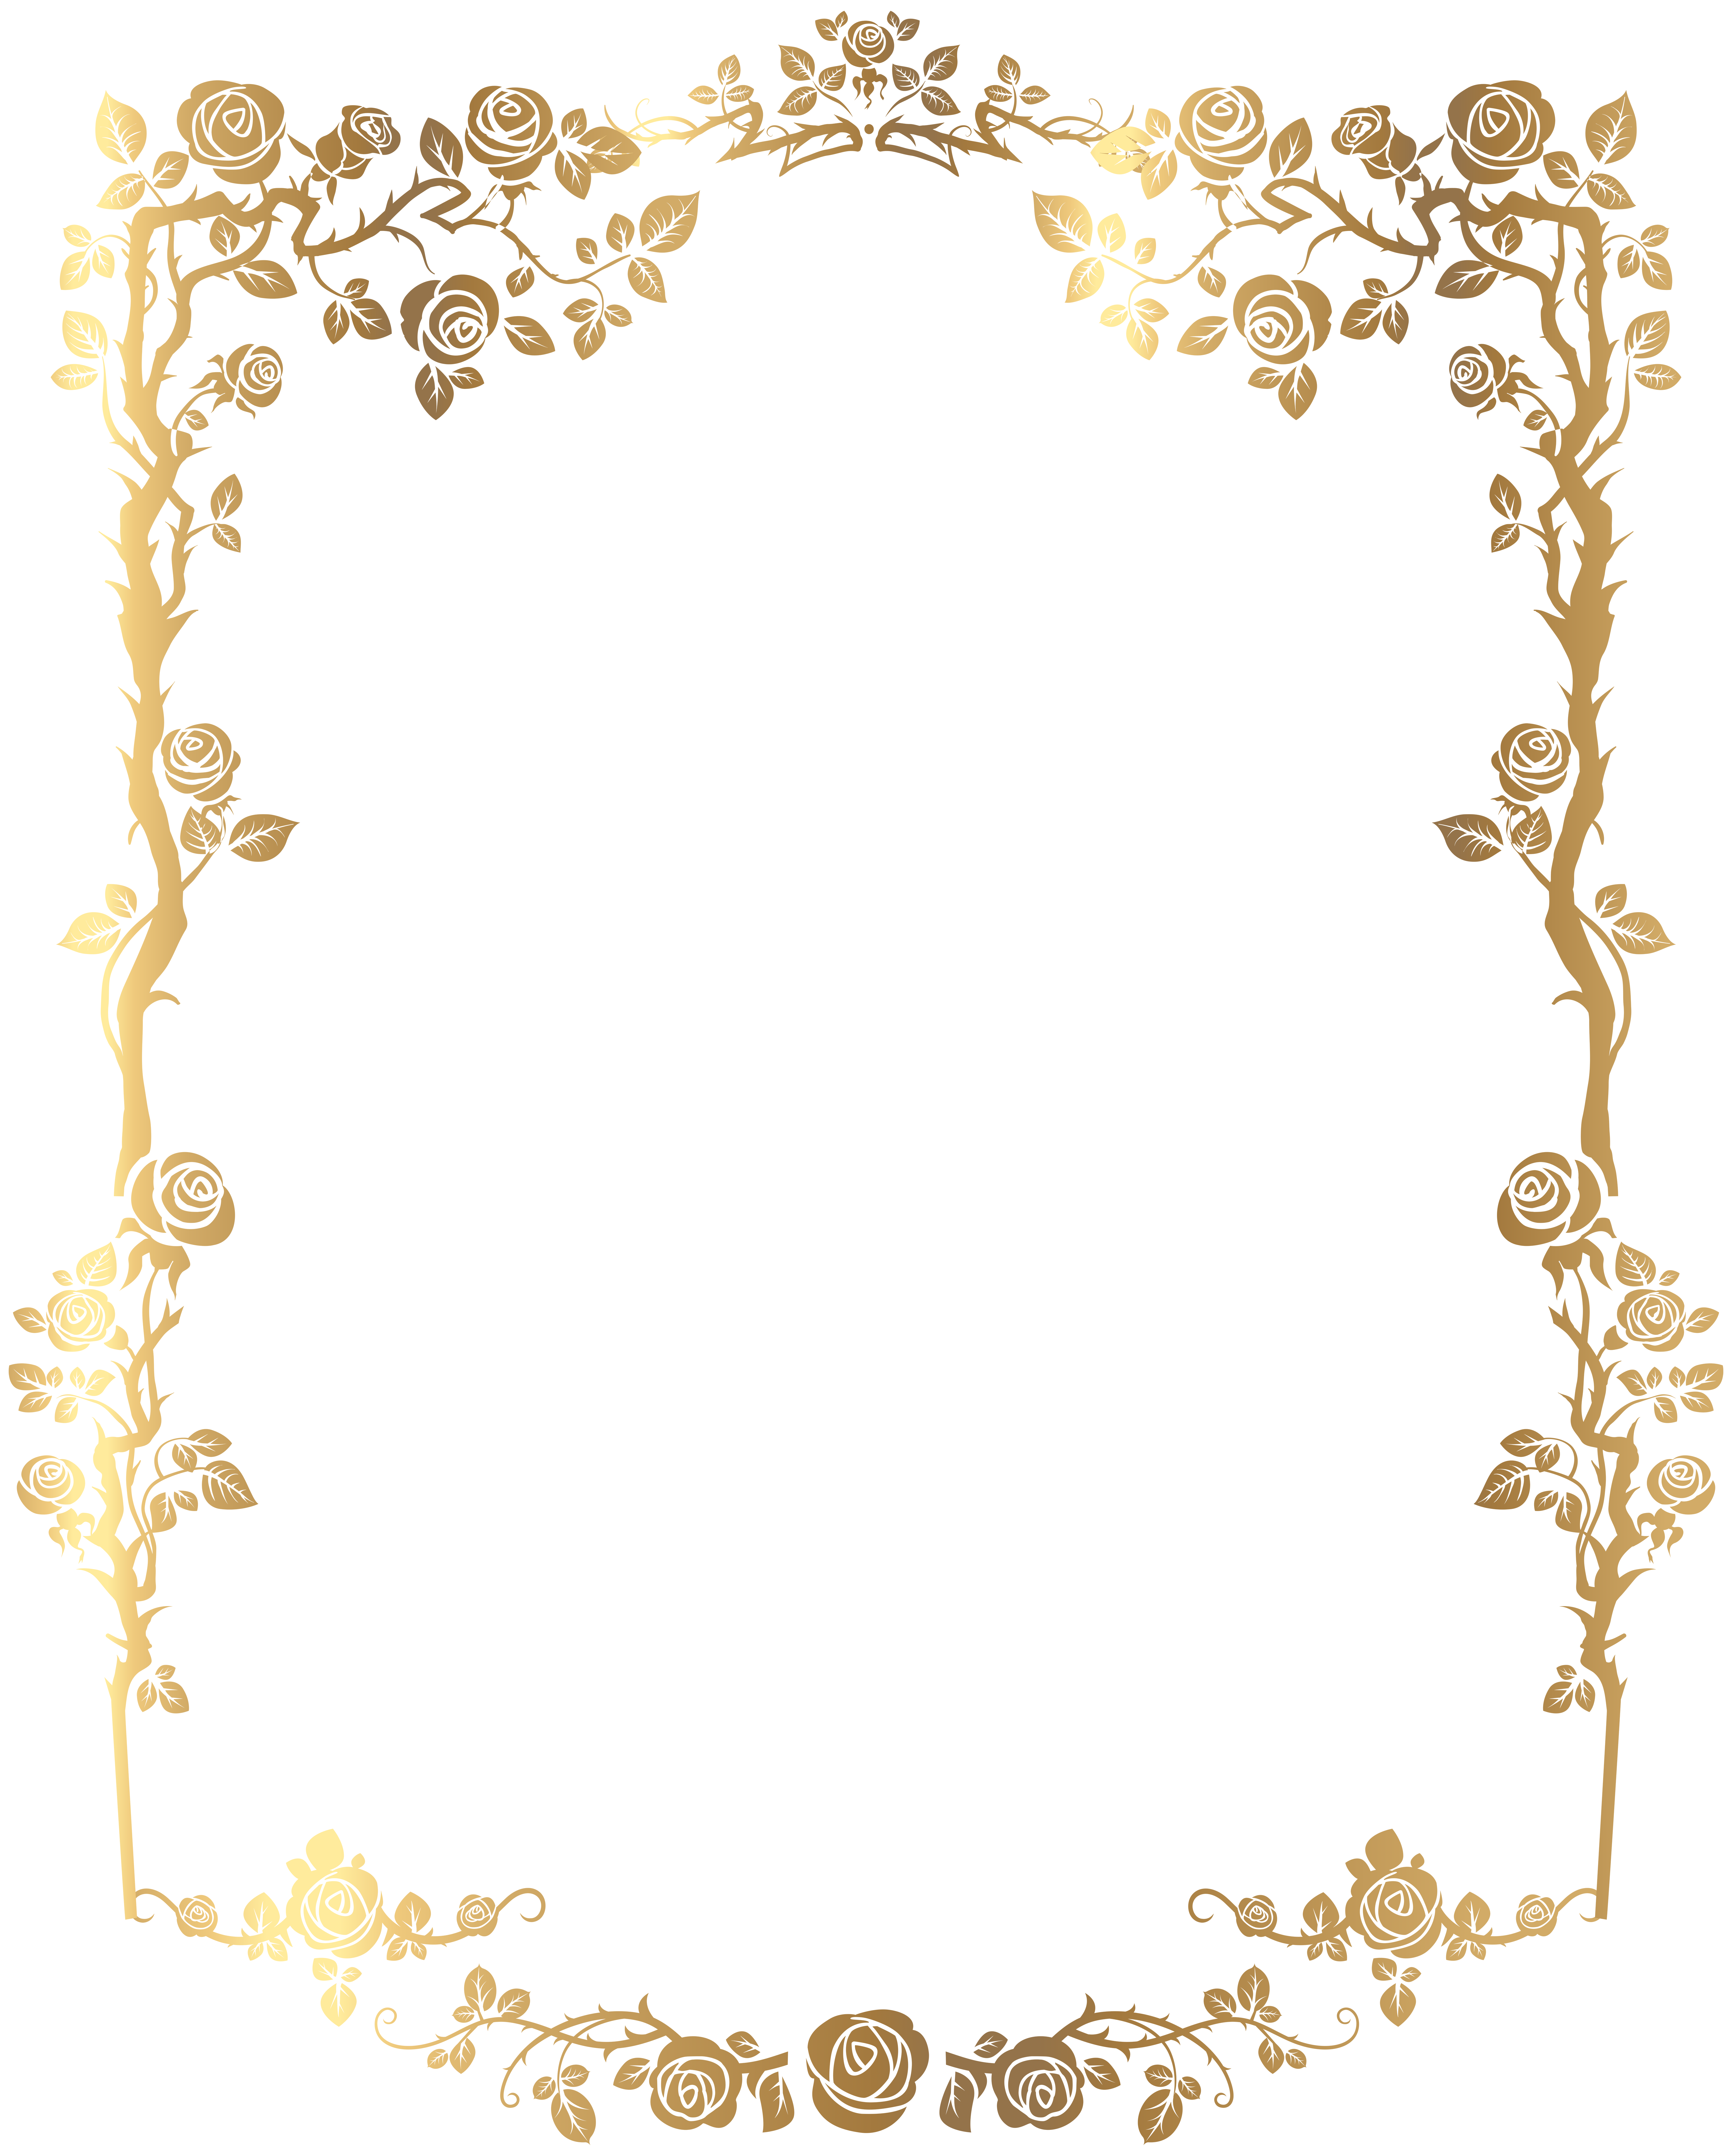 Decorative Rose Frame Png Clip Art Image Gallery Yopriceville High Quality Images And Transpar Free Clip Art Wedding Invitations Borders Invitation Frames